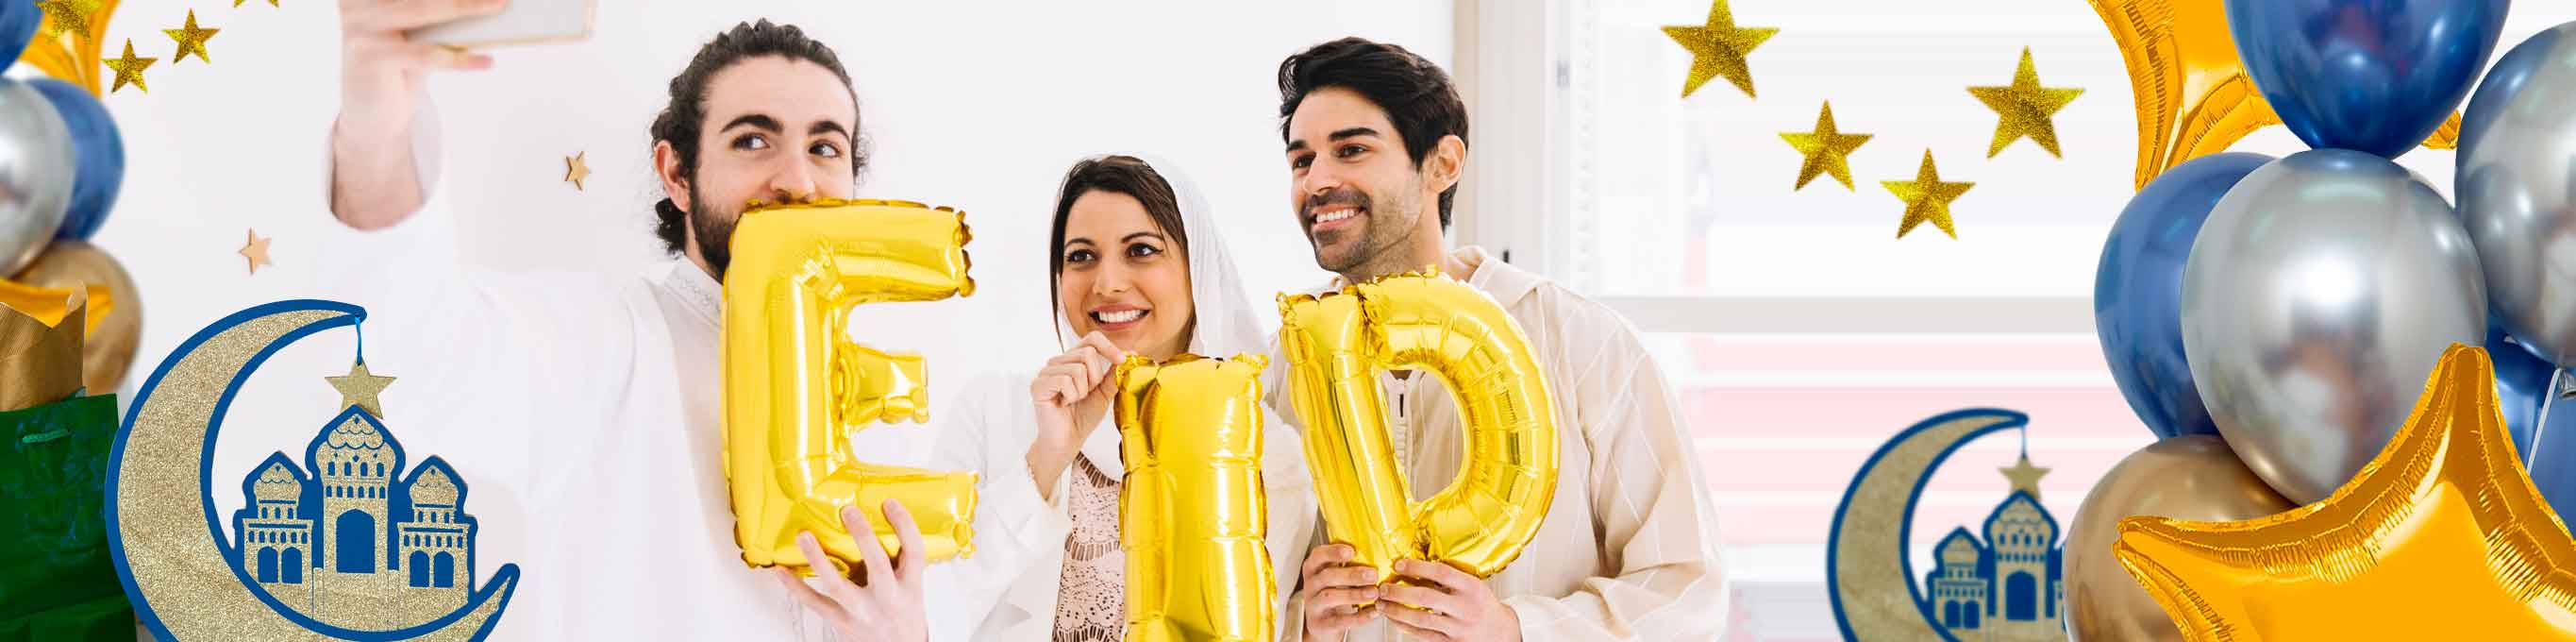 Easy Eid Party Decoration Ideas - MyPartyCentre